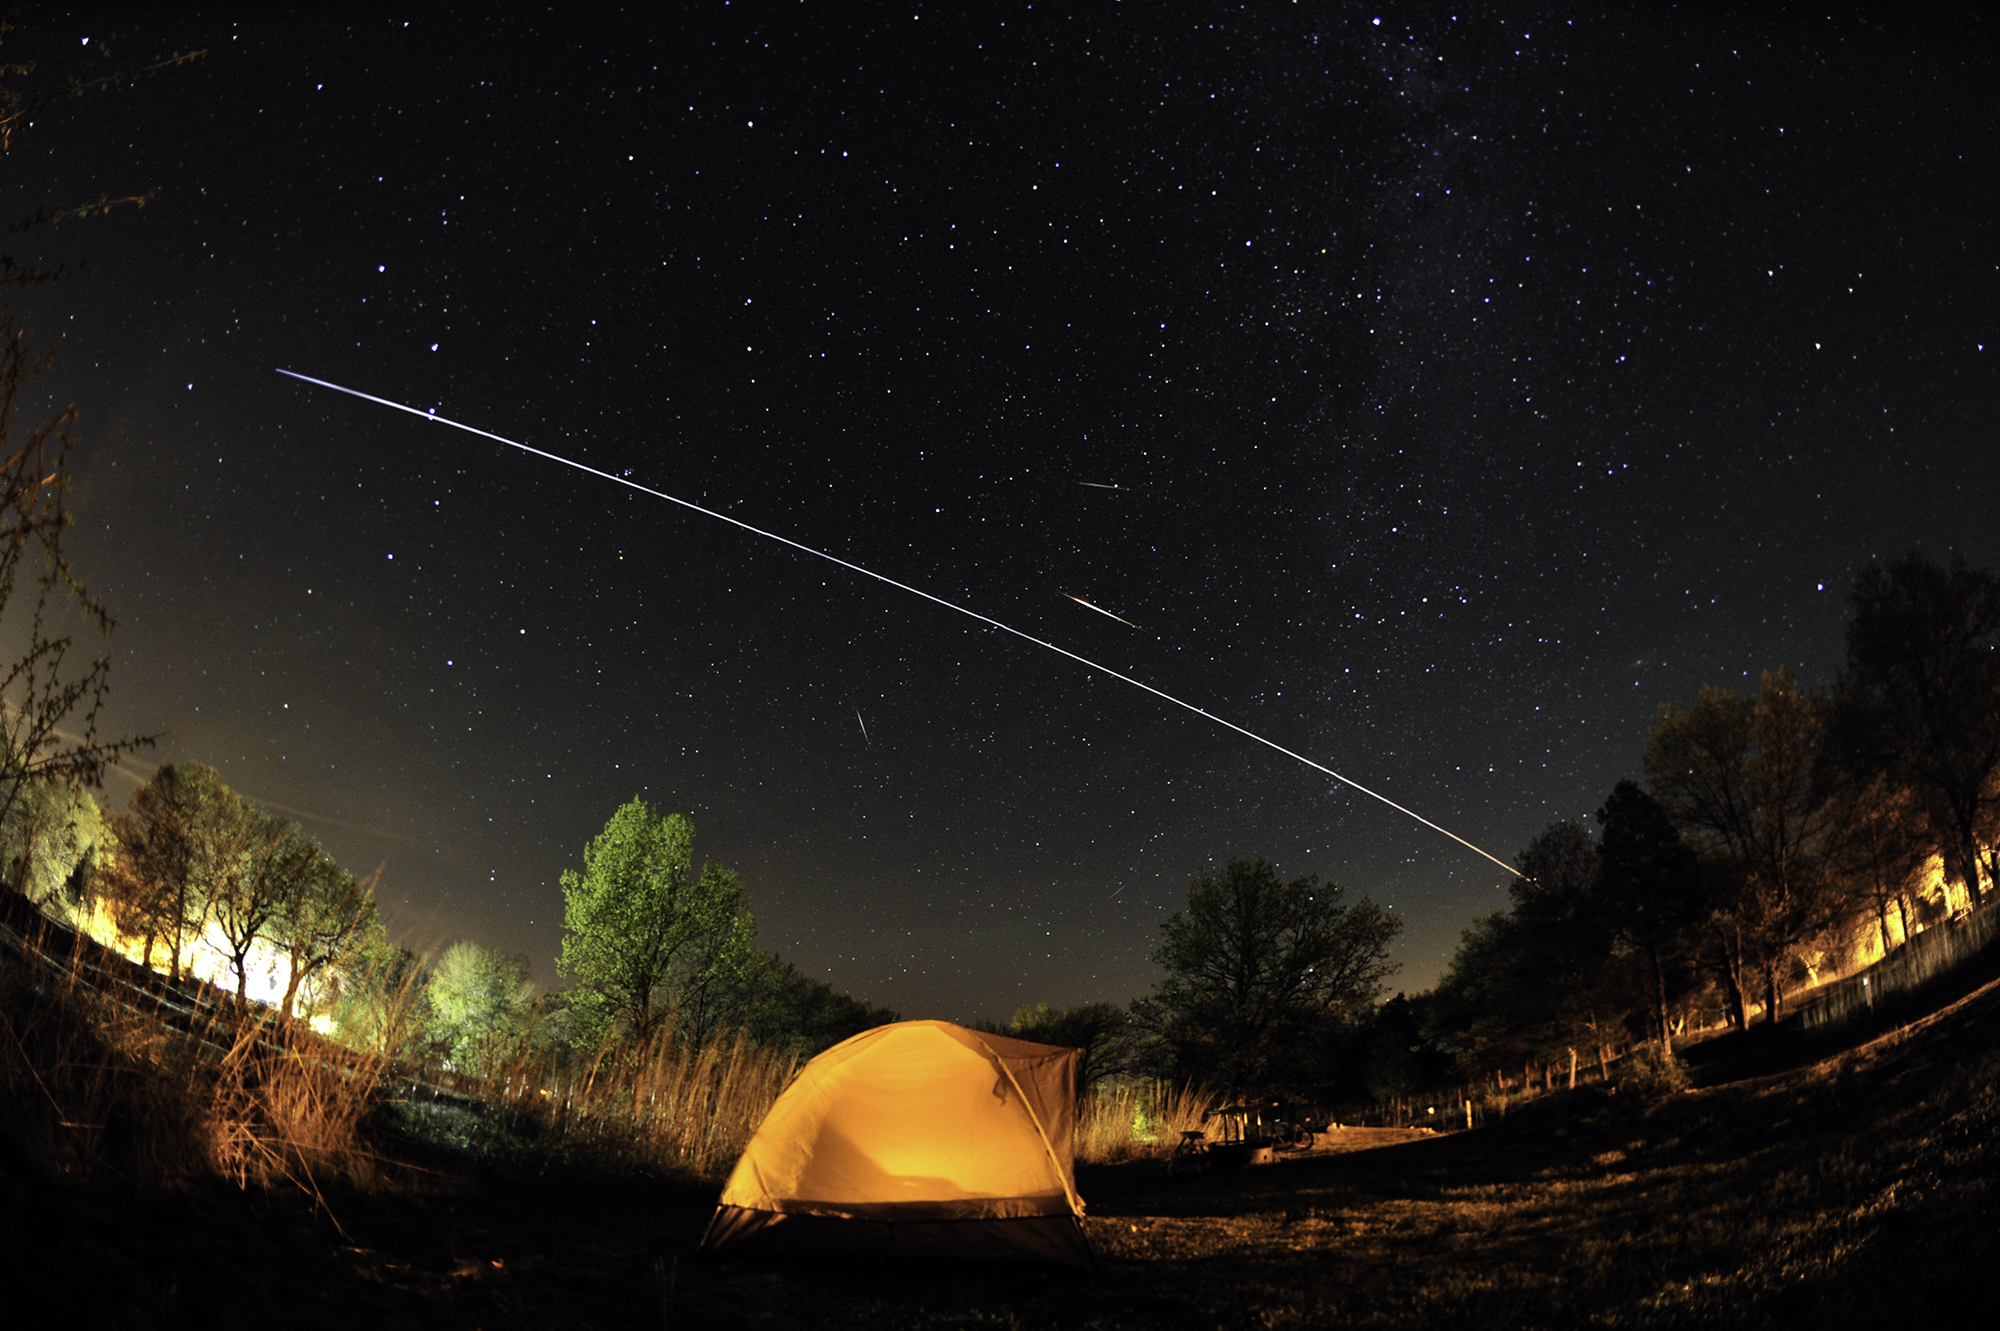 Proof that the Camelopardalids were real: a composite time-lapse taken near Lake Erie, with the International Space Station accounting for the bright streak at the  image's center. (Malcolm Park/North York Astronomical Association)